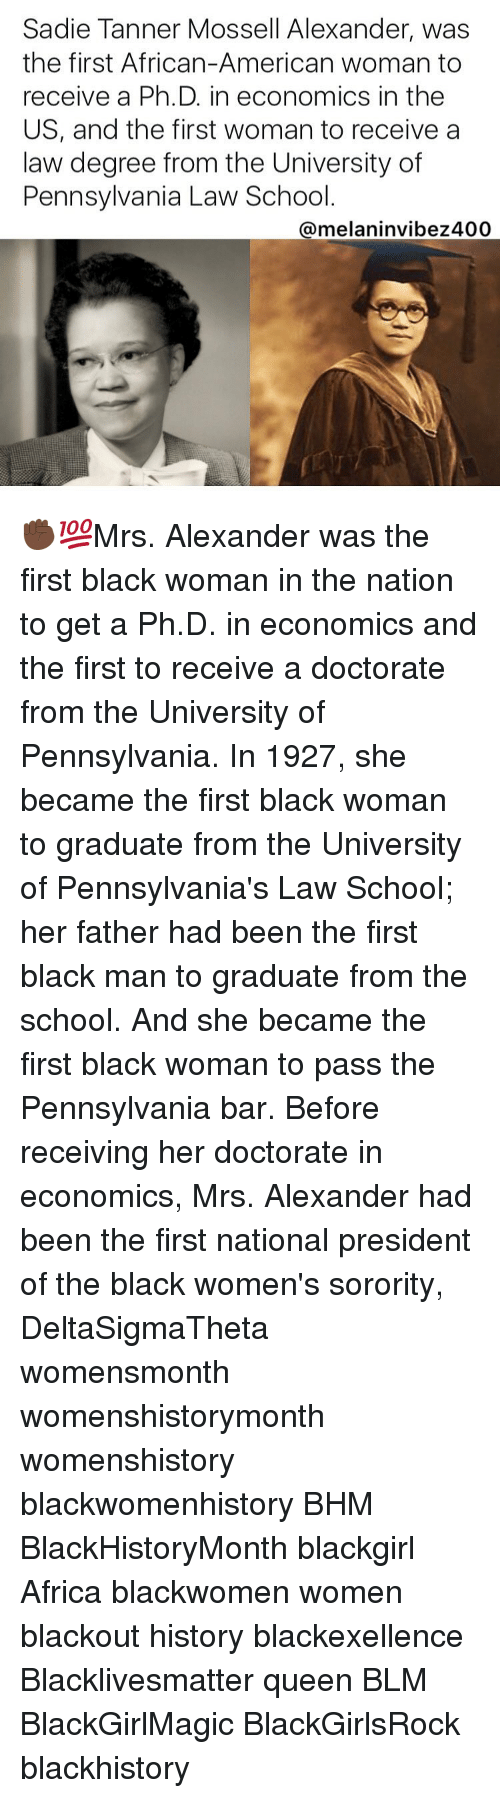 Memes, Pennsylvania, and Black Man: Sadie Tanner Mossell Alexander, was  the first African-American woman to  receive a Ph.D. in economics in the  US, and the first woman to receive a  law degree from the University of  Pennsylvania Law School  Qmelaninvibez 400 ✊🏿💯Mrs. Alexander was the first black woman in the nation to get a Ph.D. in economics and the first to receive a doctorate from the University of Pennsylvania. In 1927, she became the first black woman to graduate from the University of Pennsylvania's Law School; her father had been the first black man to graduate from the school. And she became the first black woman to pass the Pennsylvania bar. Before receiving her doctorate in economics, Mrs. Alexander had been the first national president of the black women's sorority, DeltaSigmaTheta womensmonth womenshistorymonth womenshistory blackwomenhistory BHM BlackHistoryMonth blackgirl Africa blackwomen women blackout history blackexellence Blacklivesmatter queen BLM BlackGirlMagic BlackGirlsRock blackhistory